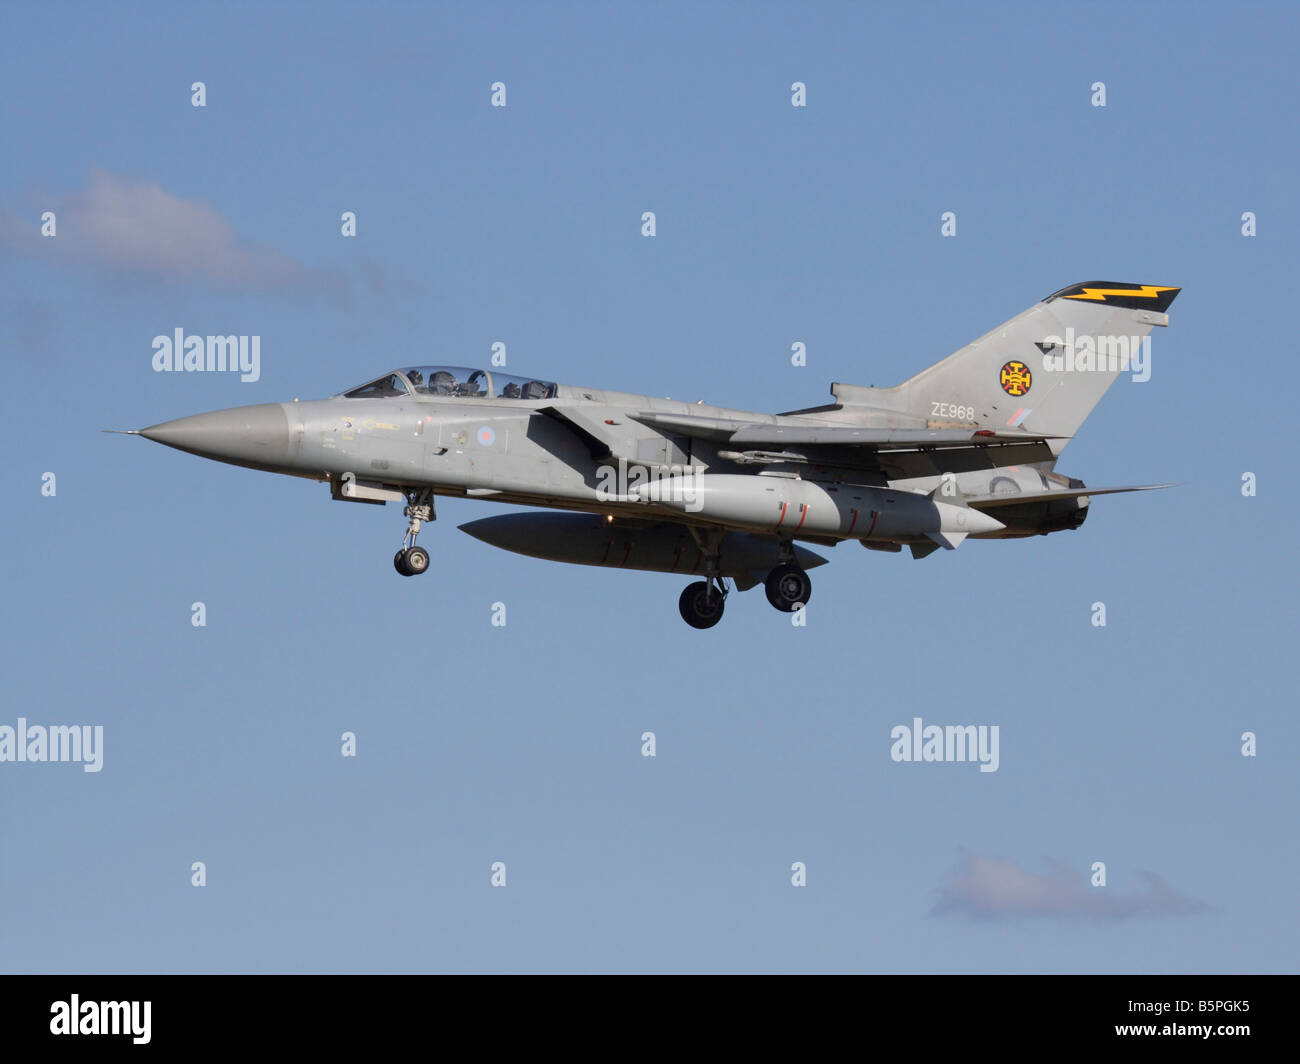 Tornado F3 of 111 Squadron, Royal Air Force - Stock Image